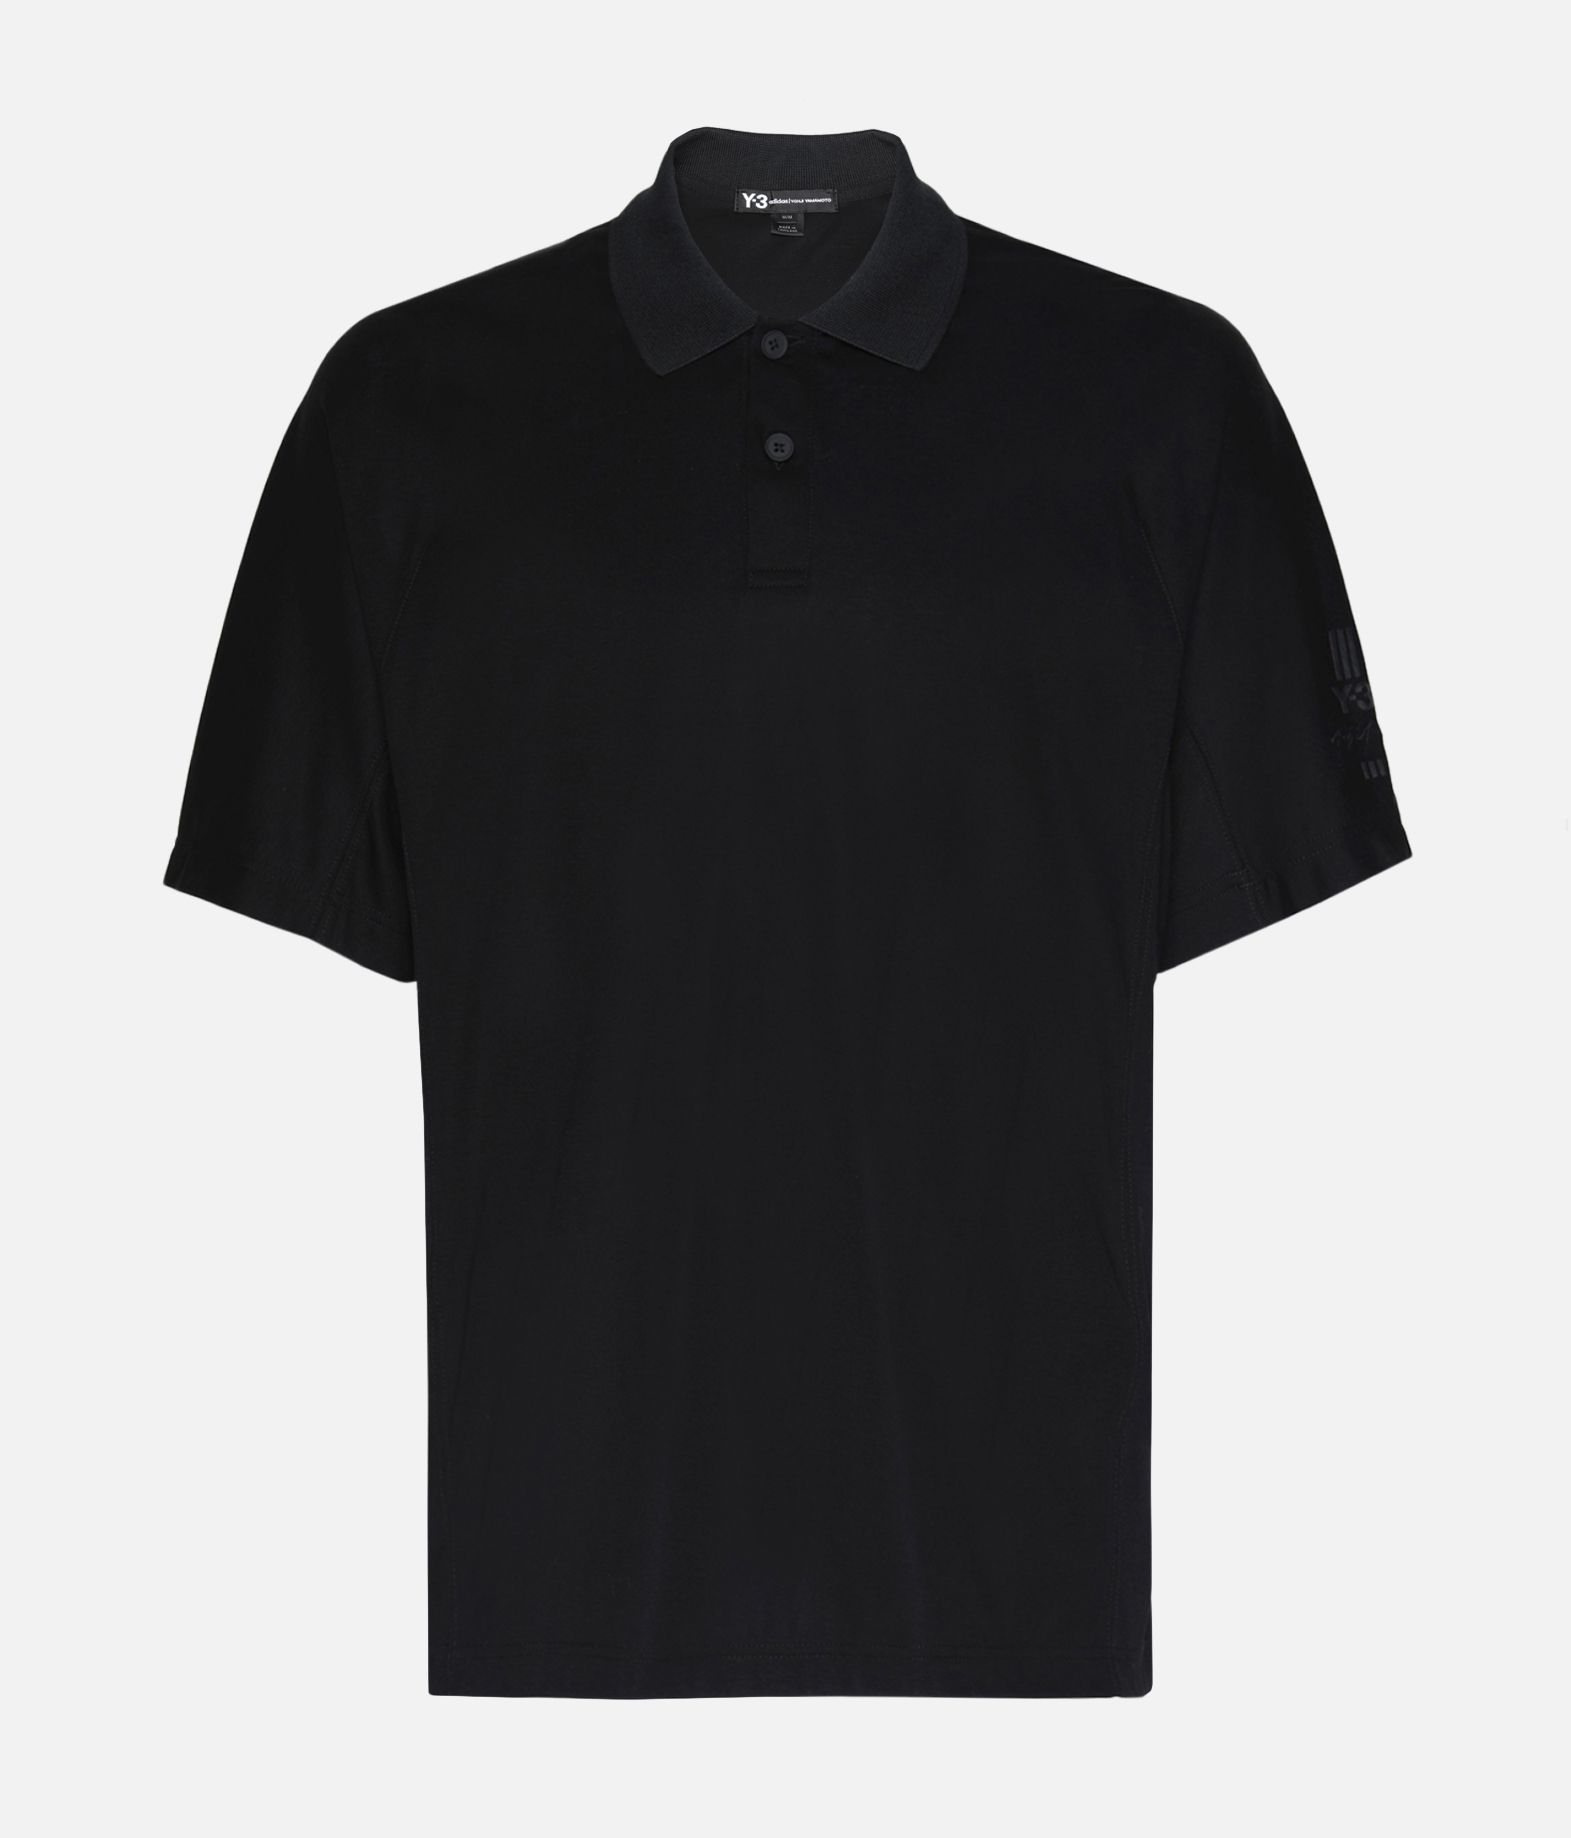 df96bfa0 Y 3 Classic Polo Shirt Polo Black | Adidas Y-3 Official Site